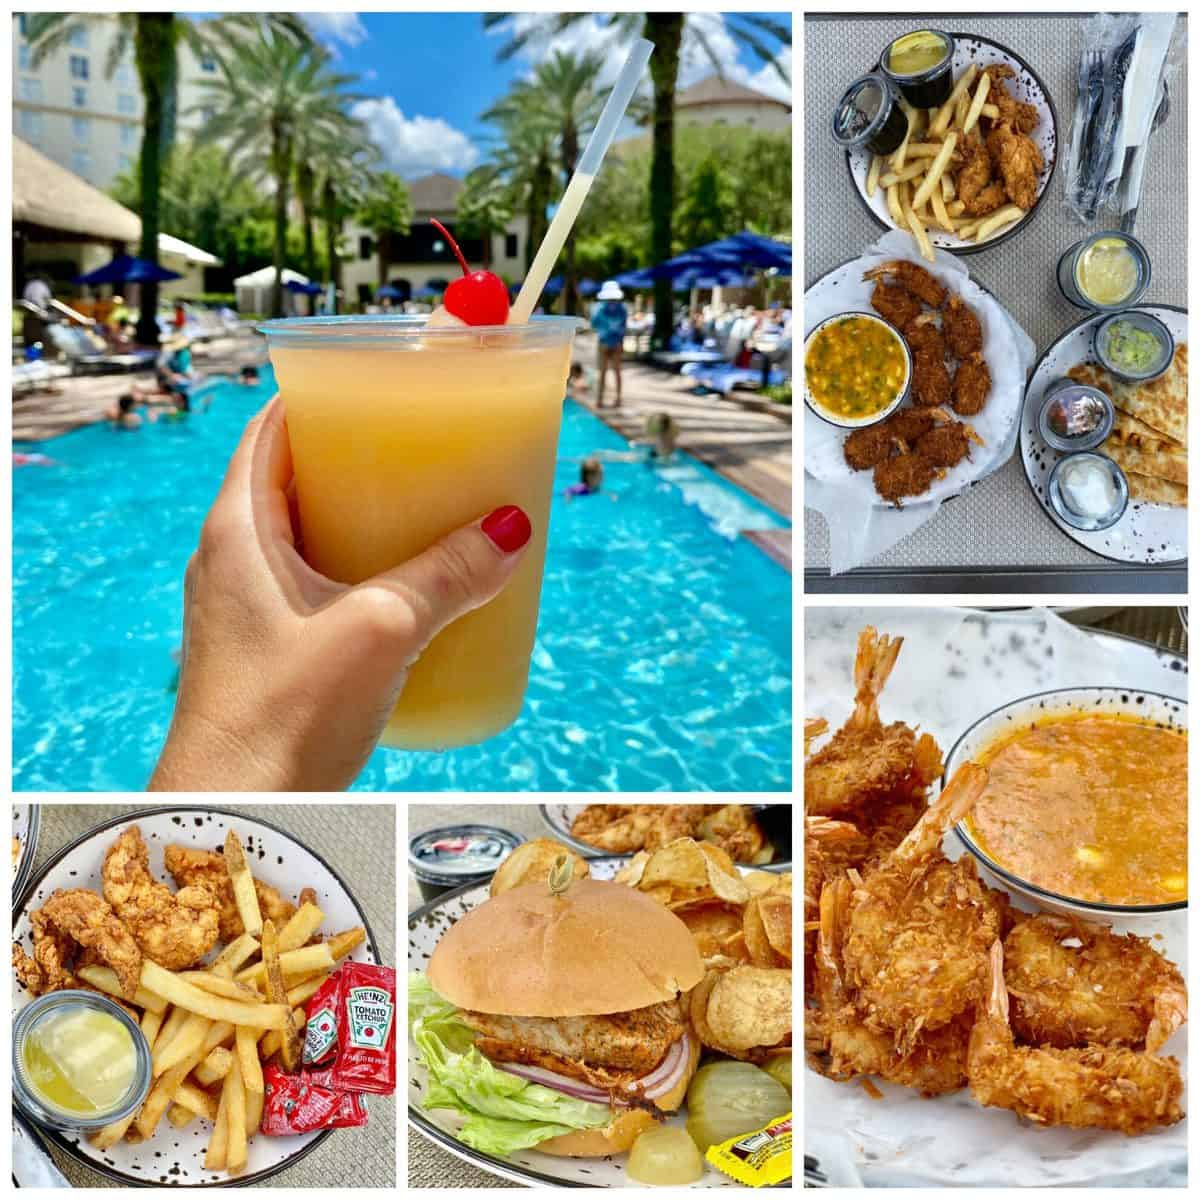 Five food photo collage; tropical drink, coconut shrimp, fish sandwich, and chicken strips with fries.